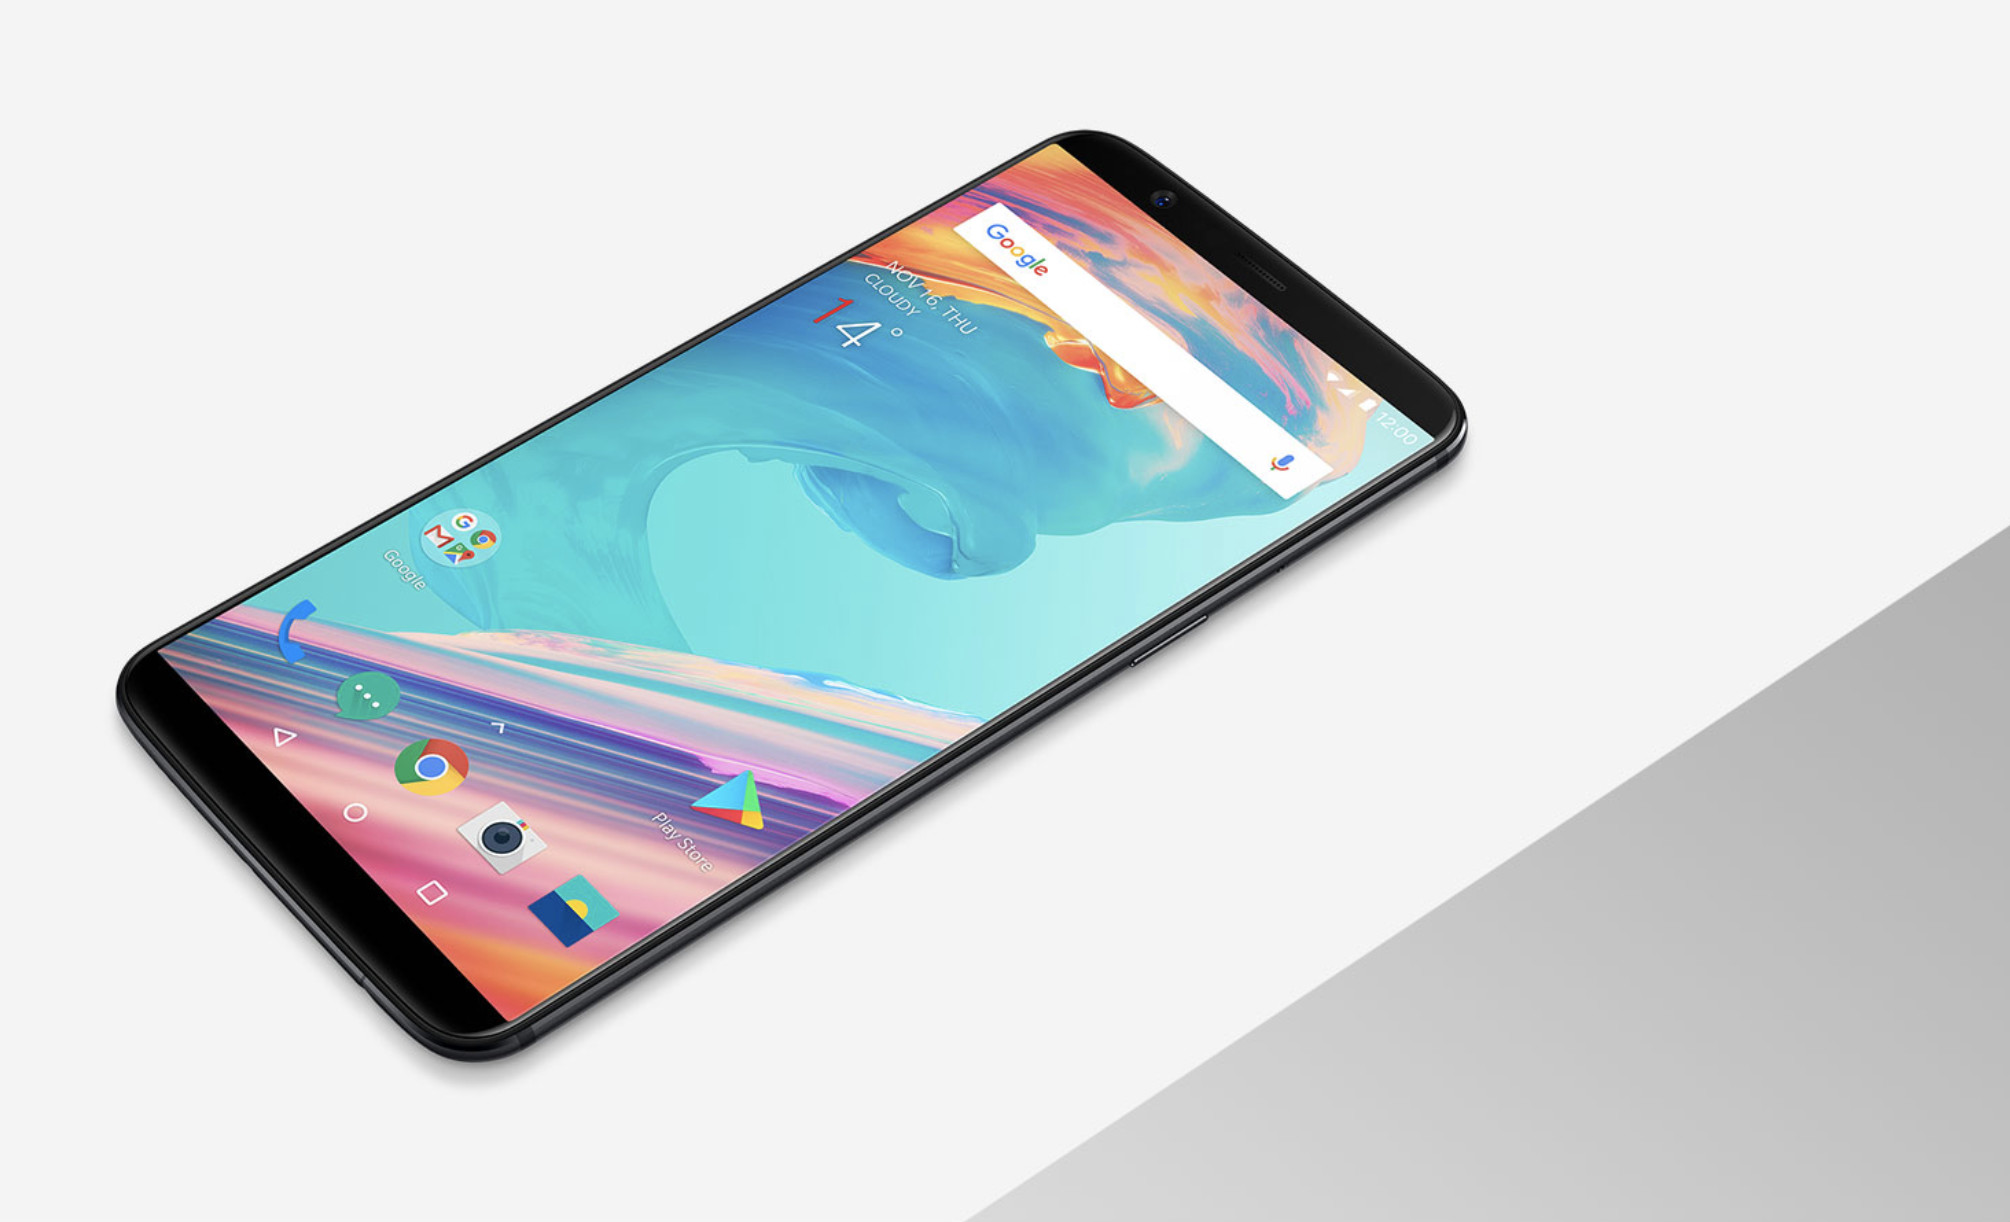 OnePlus 5, 5T not able to play Netflix videos in HD